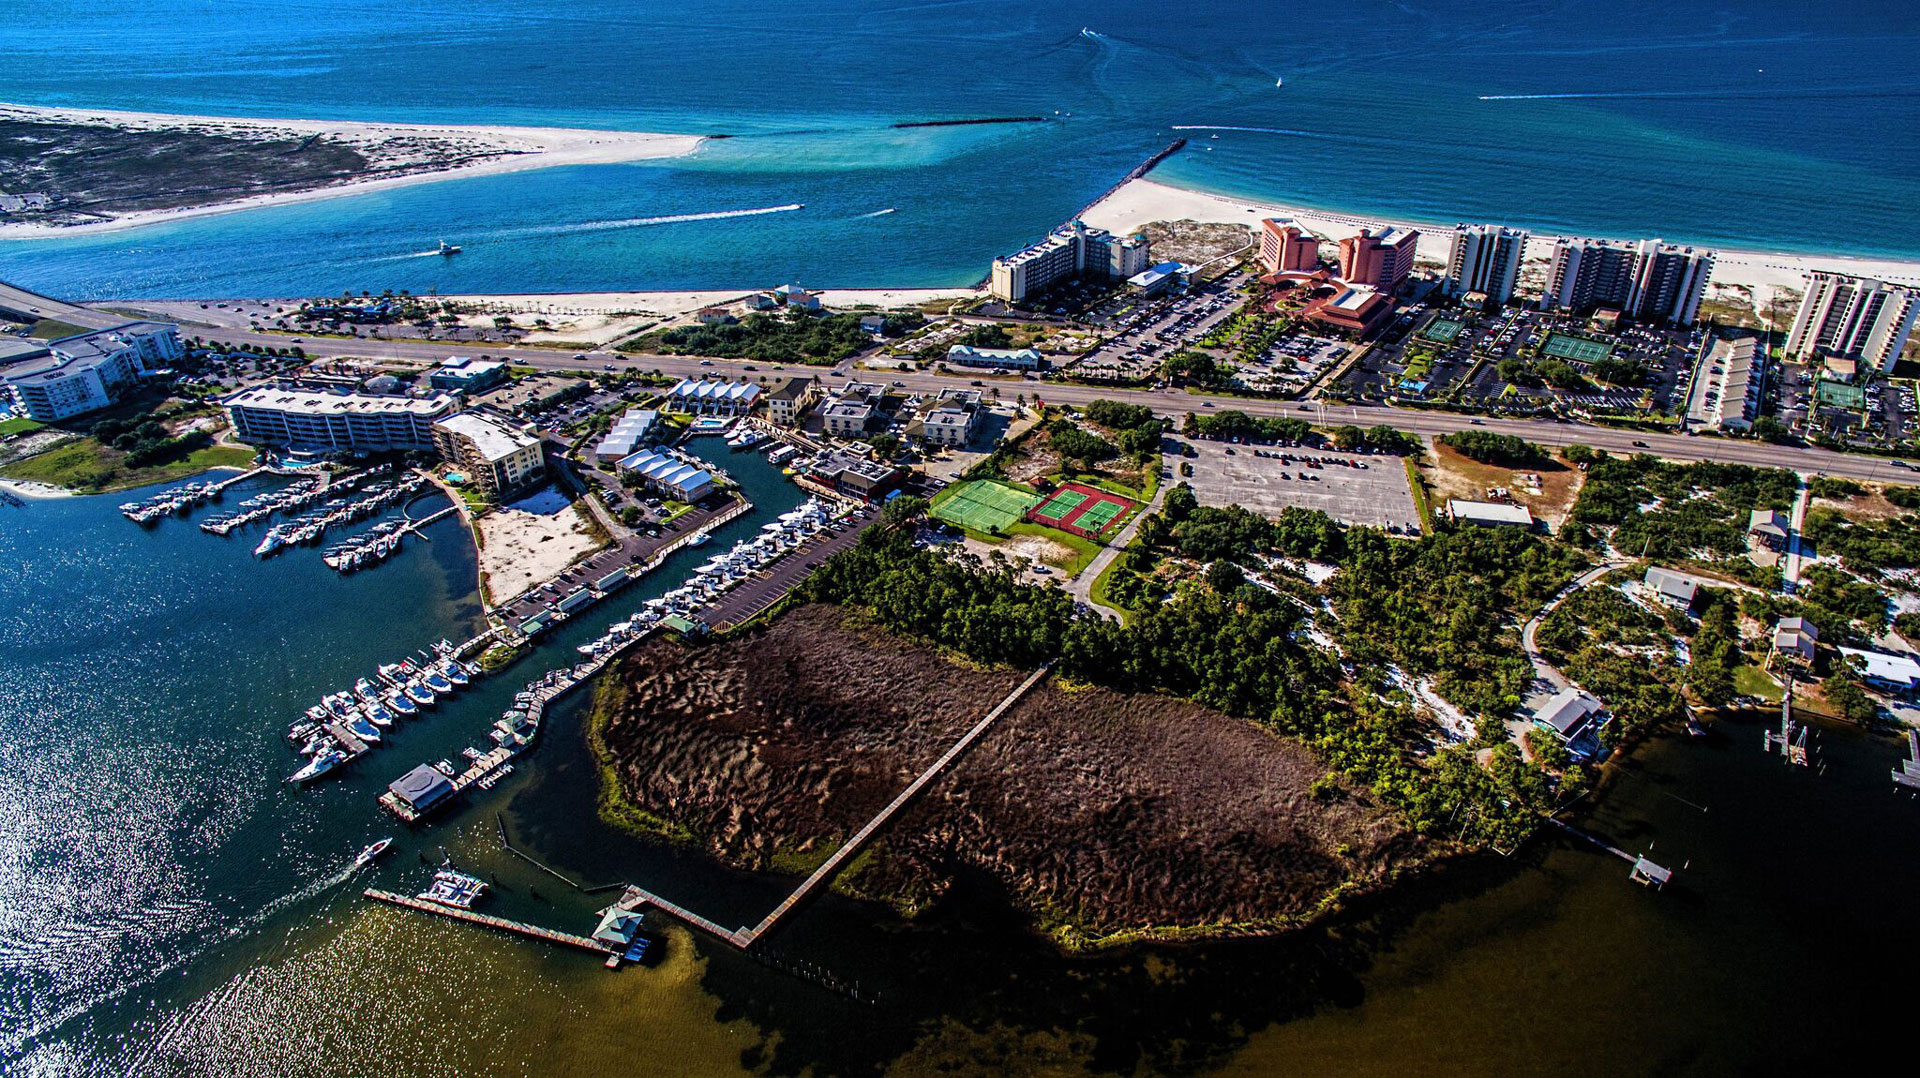 aerial view of perdido beach resort and perdido pass area